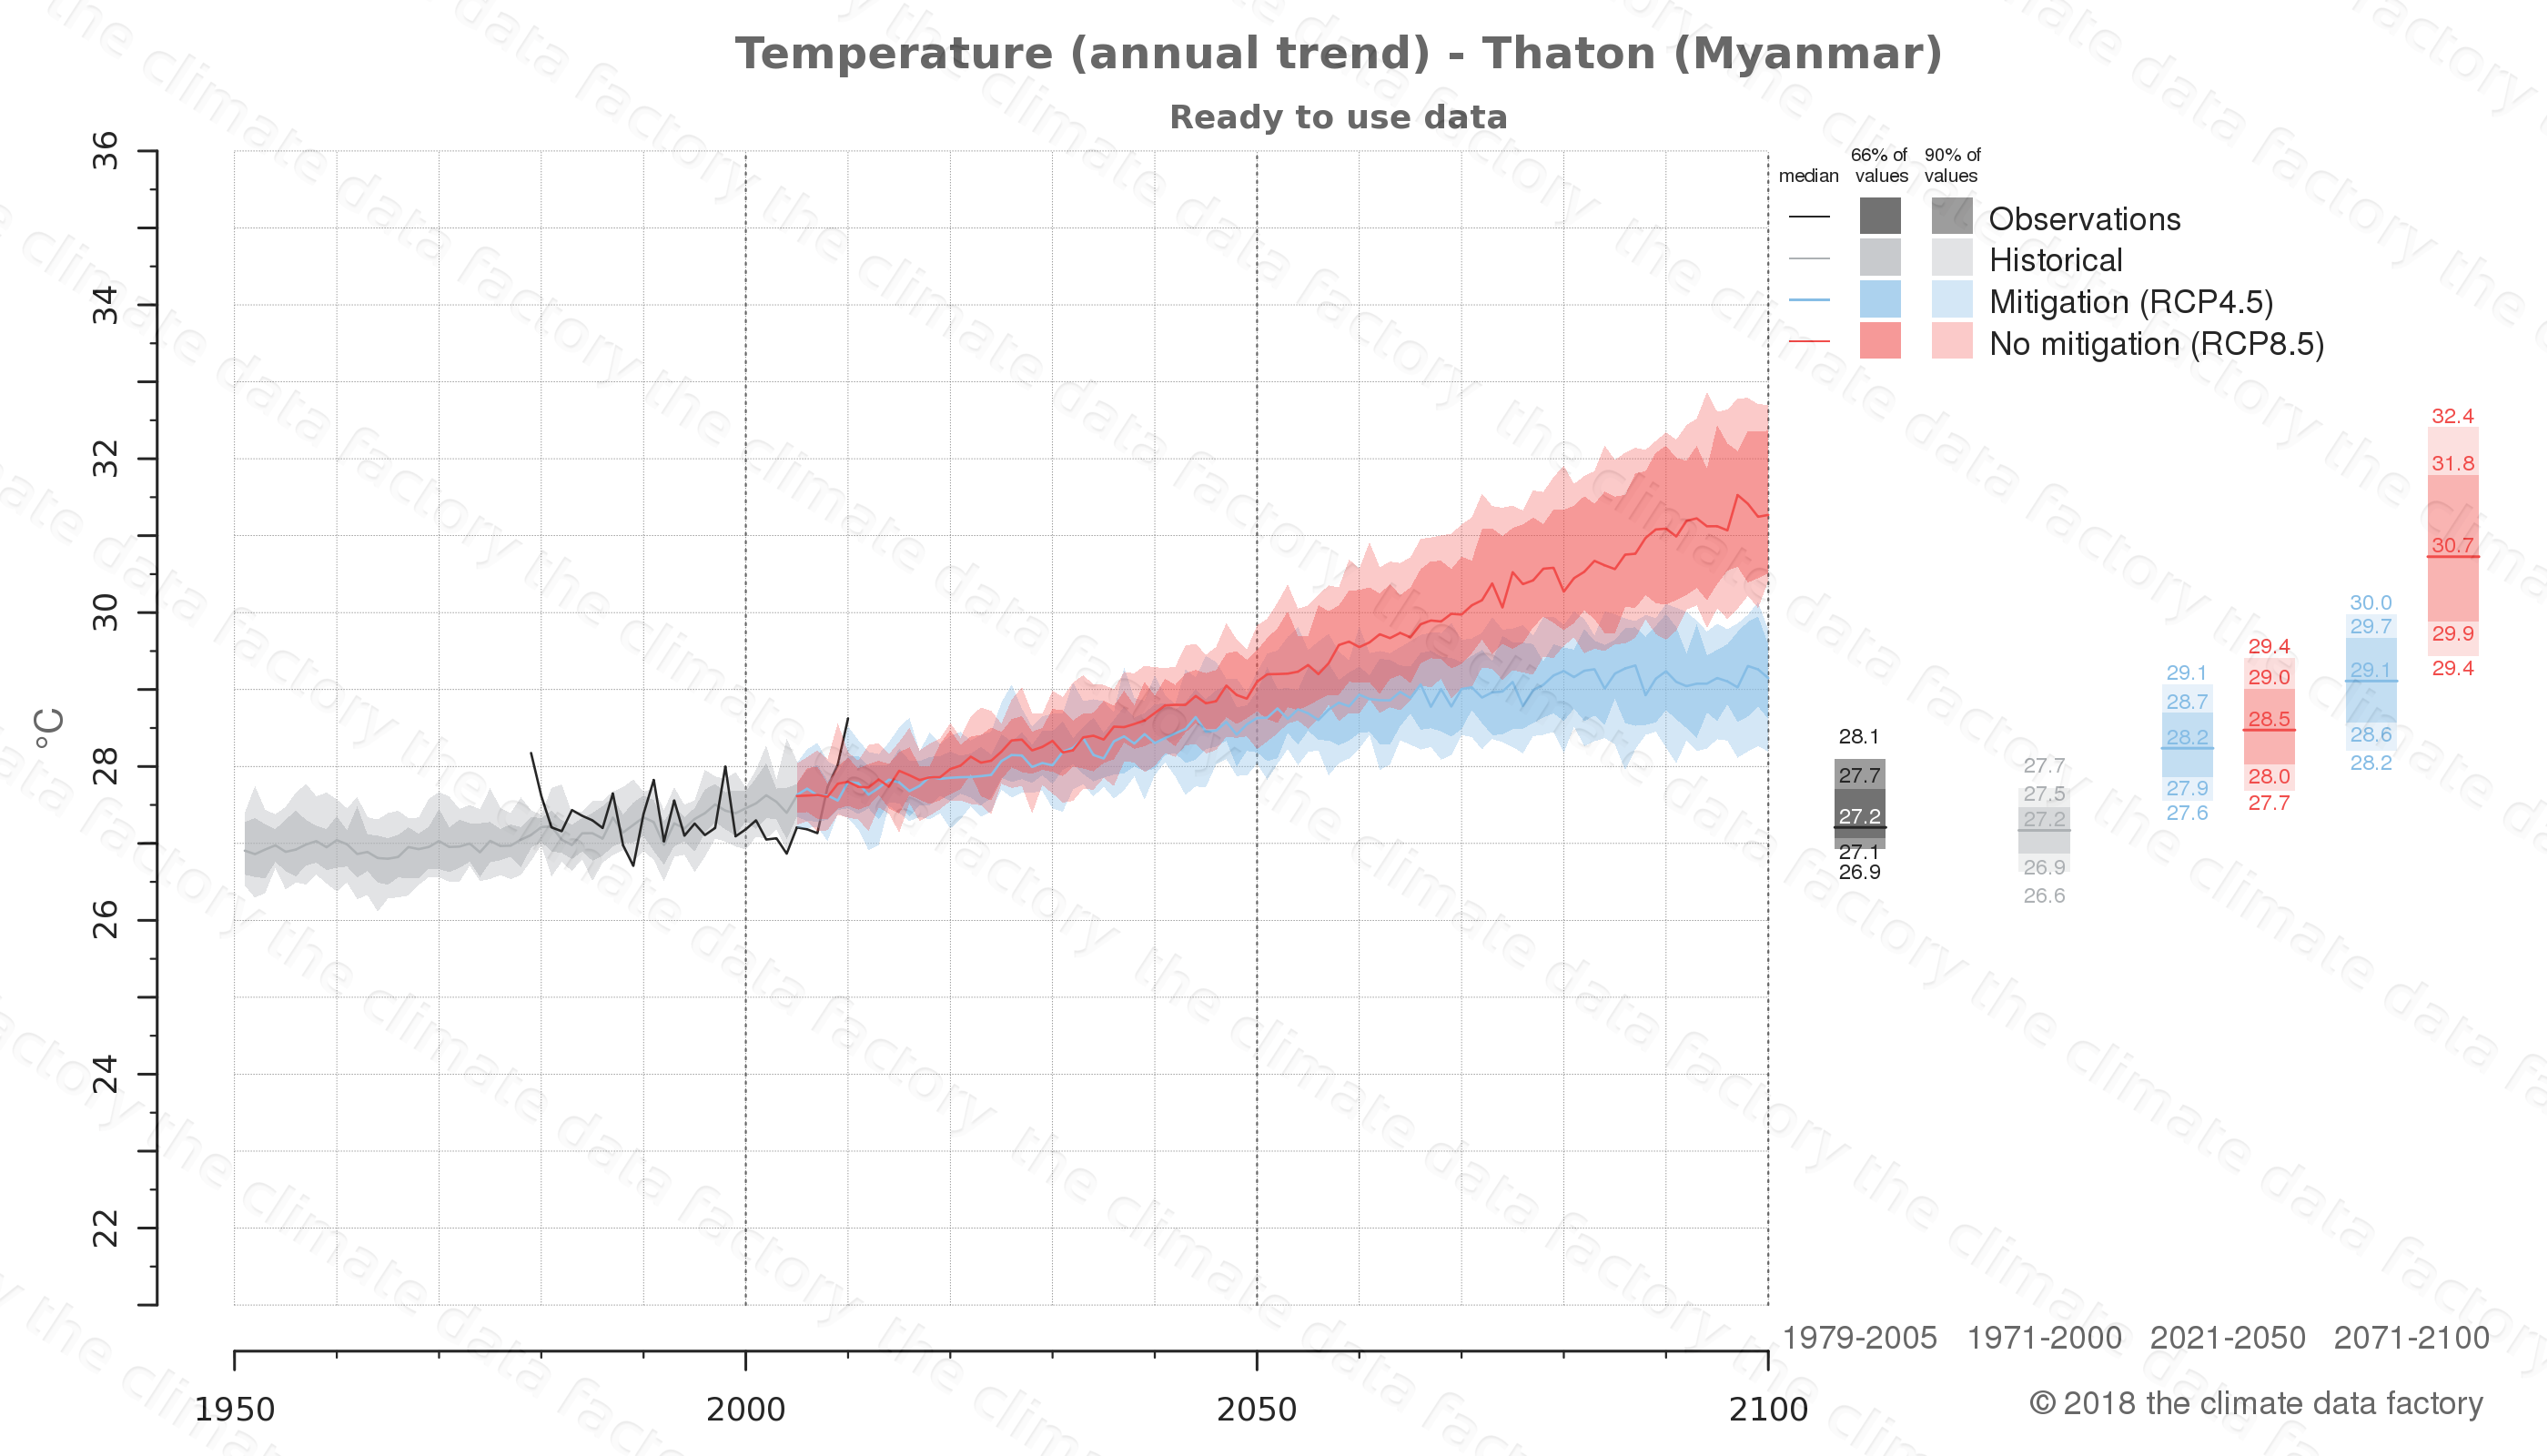 climate change data policy adaptation climate graph city data temperature thaton myanmar